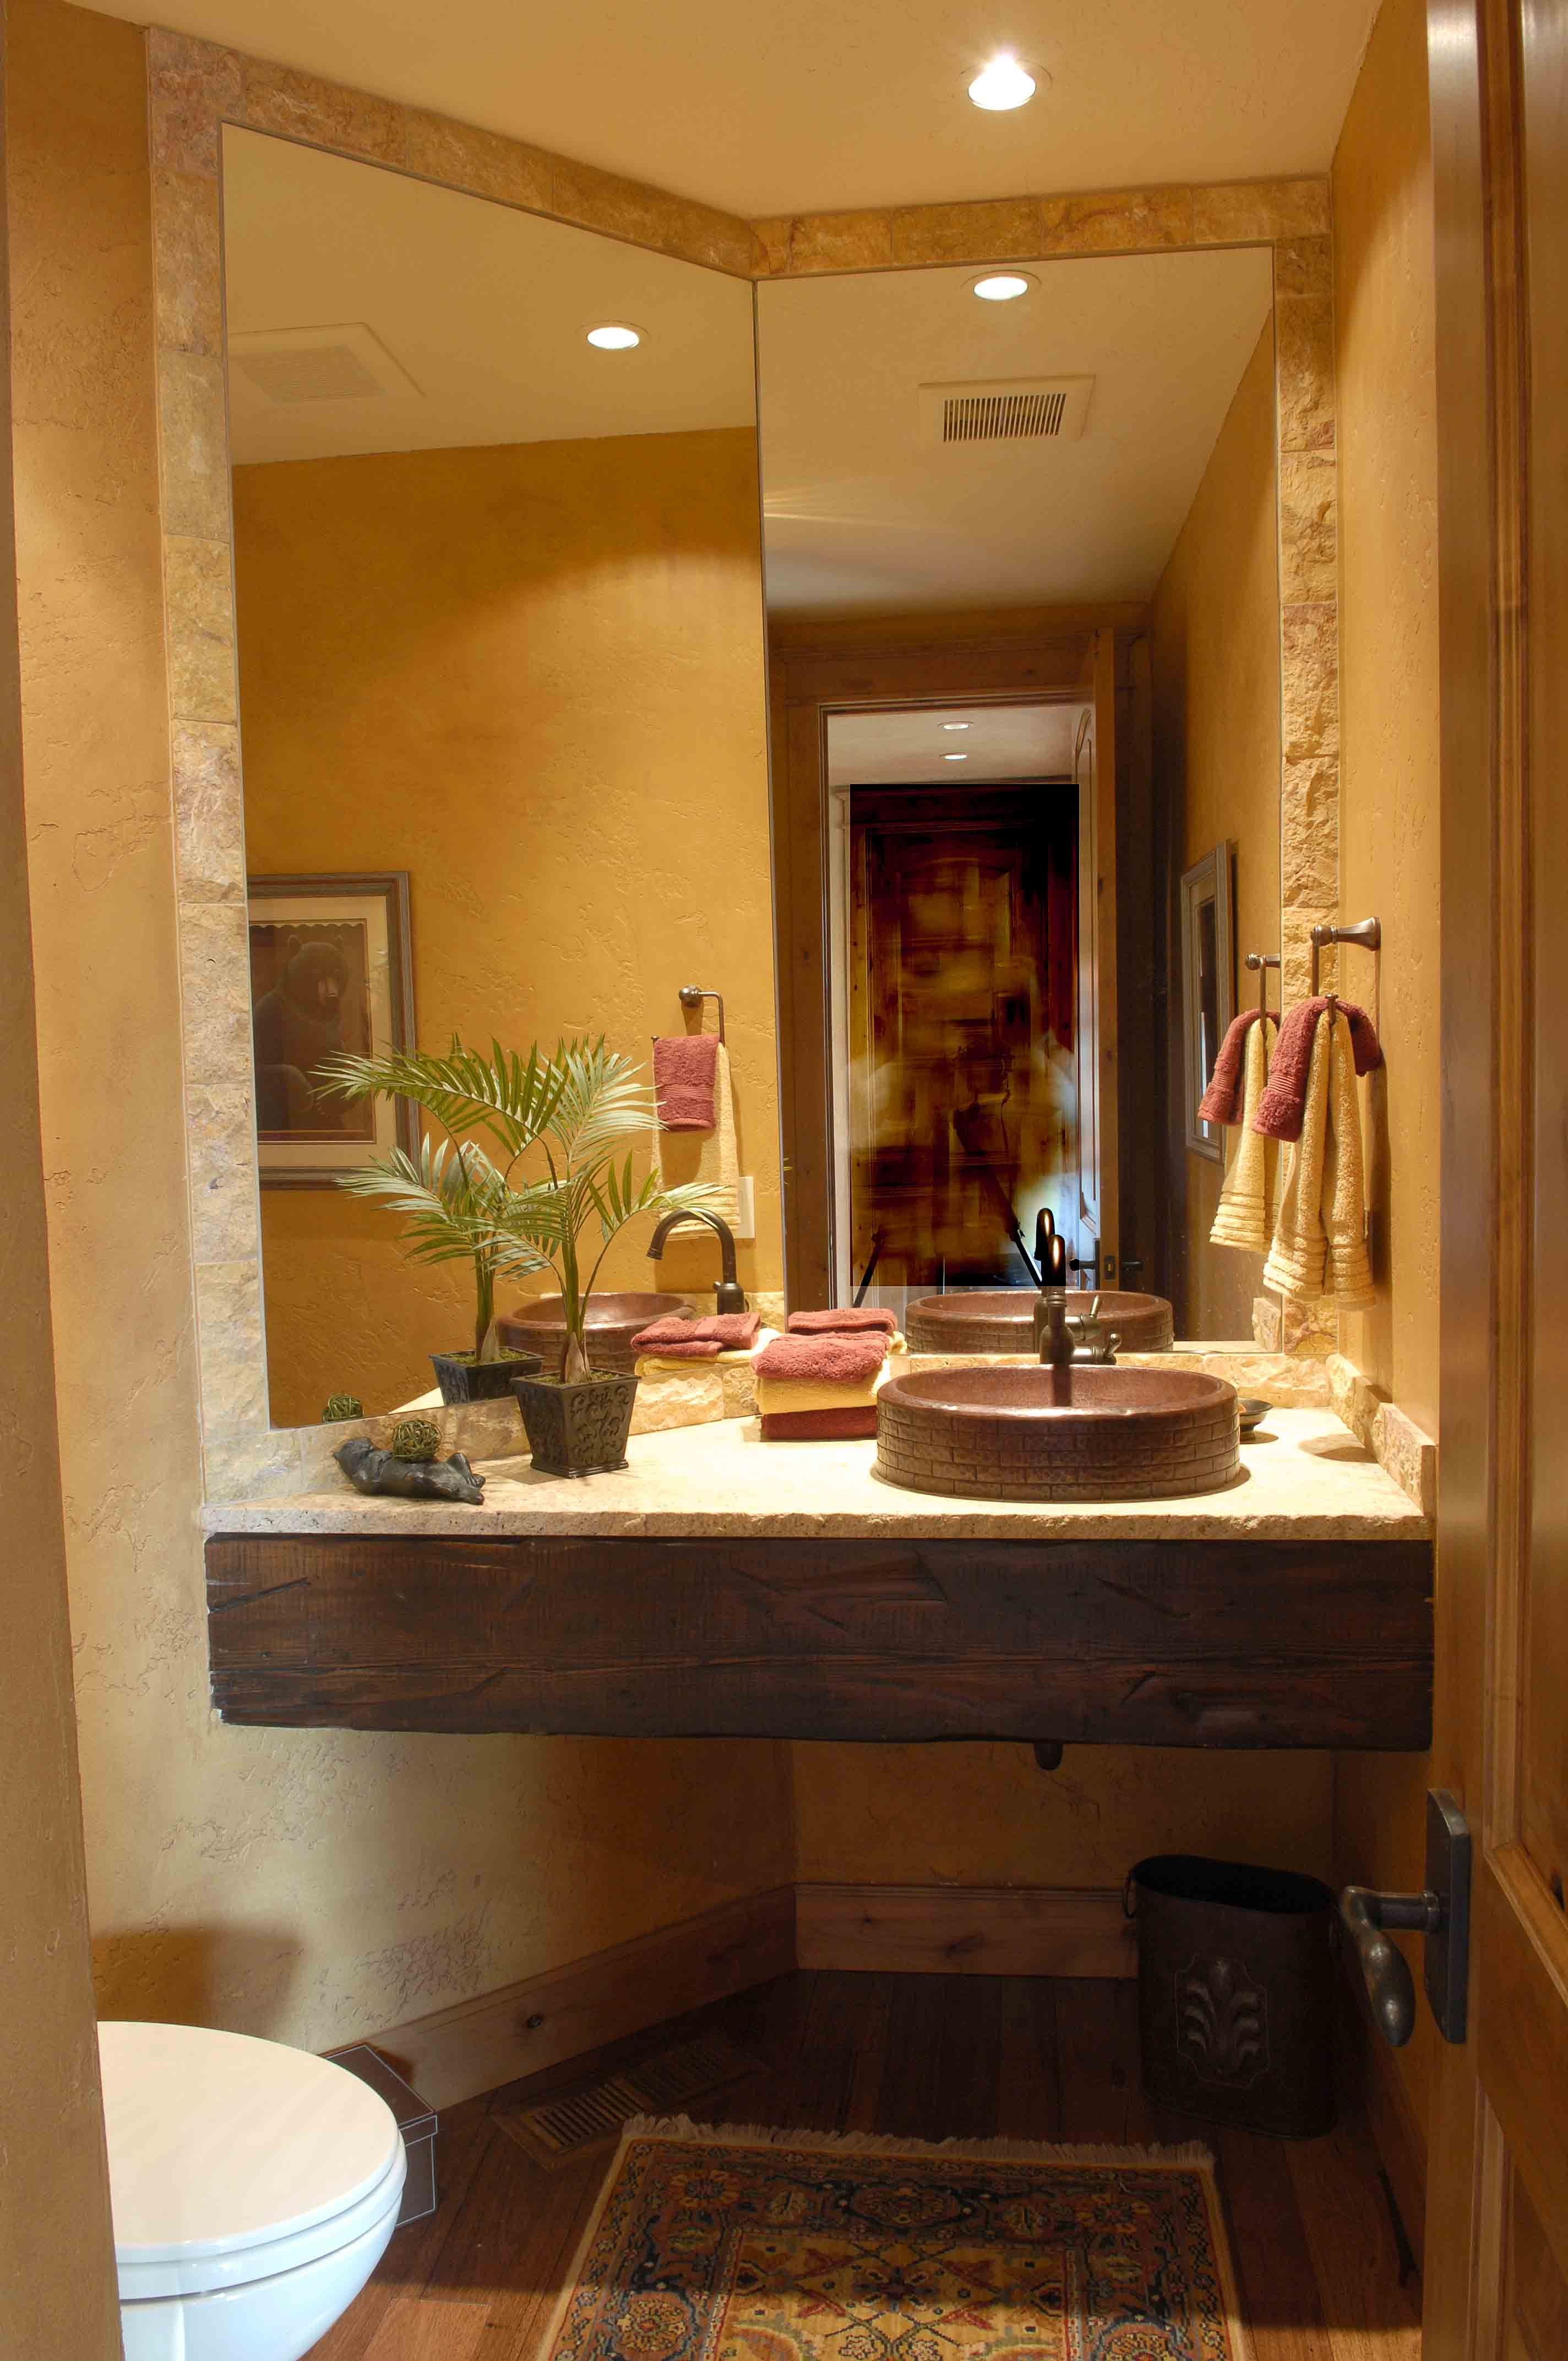 Guest Bathroom From Sisters Or Lodge Style Home Homes And Design